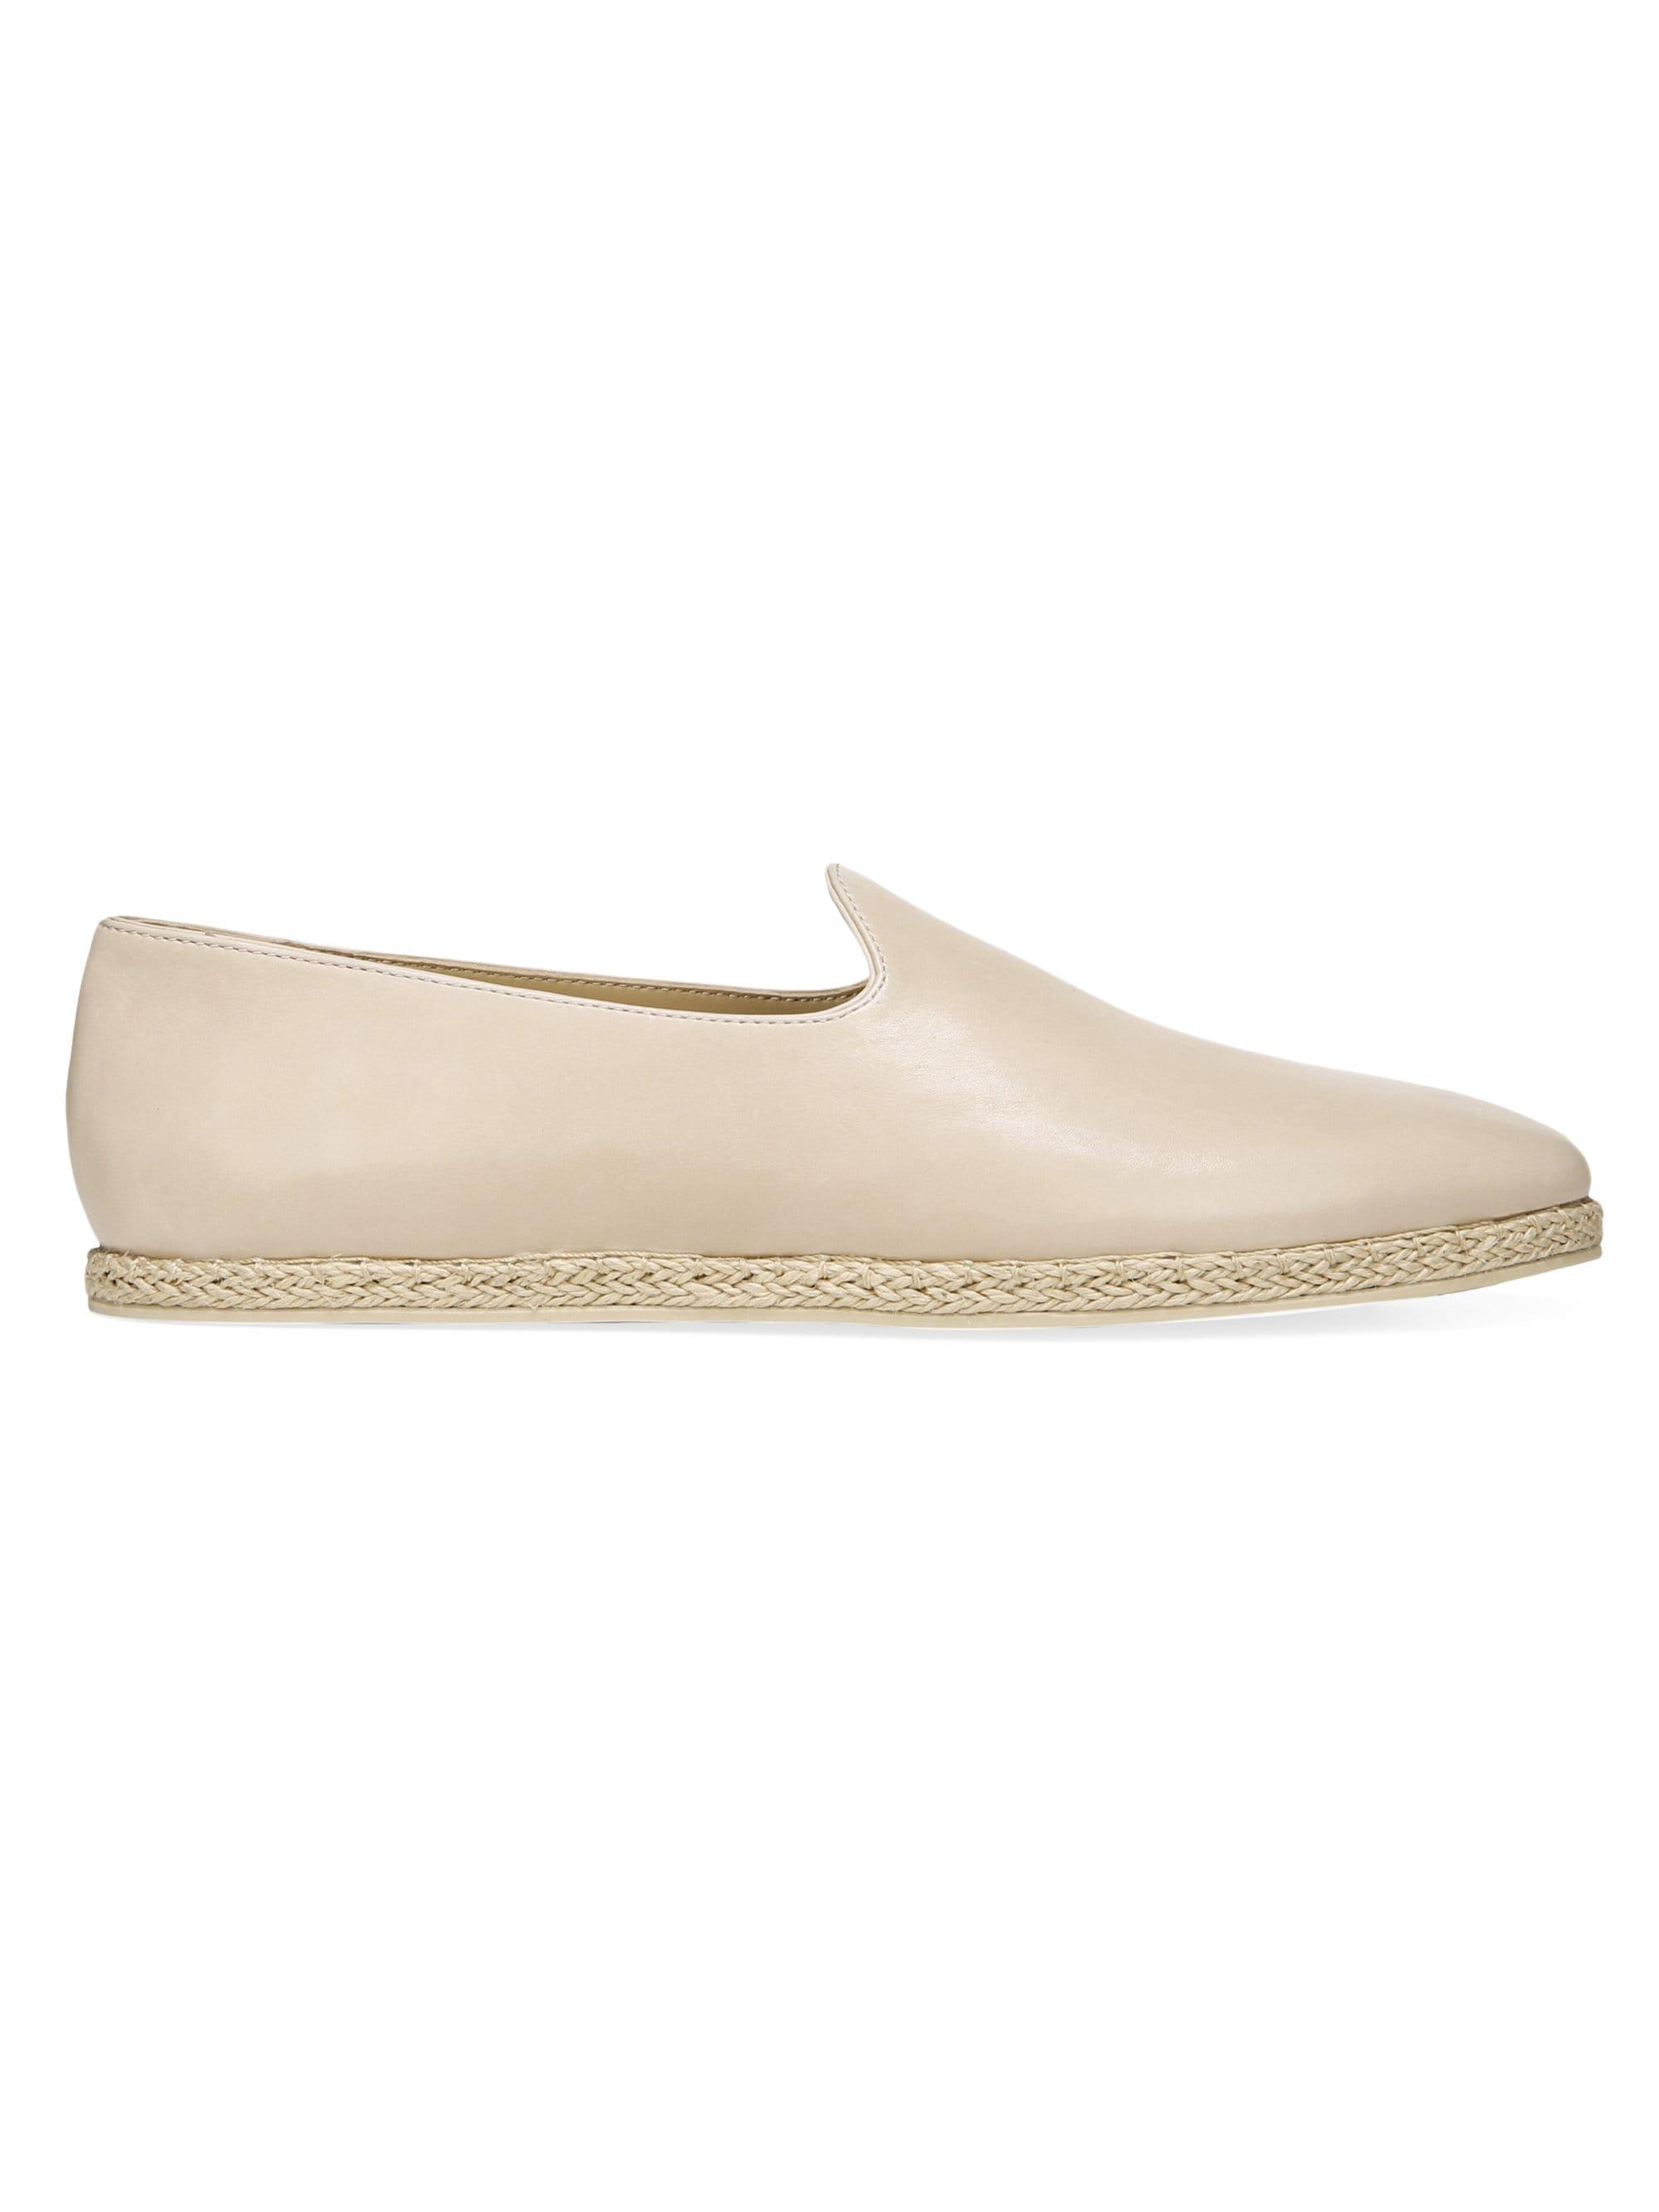 91698db014c5 Lyst - Vince Malia 2 Leather Espadrilles in Natural